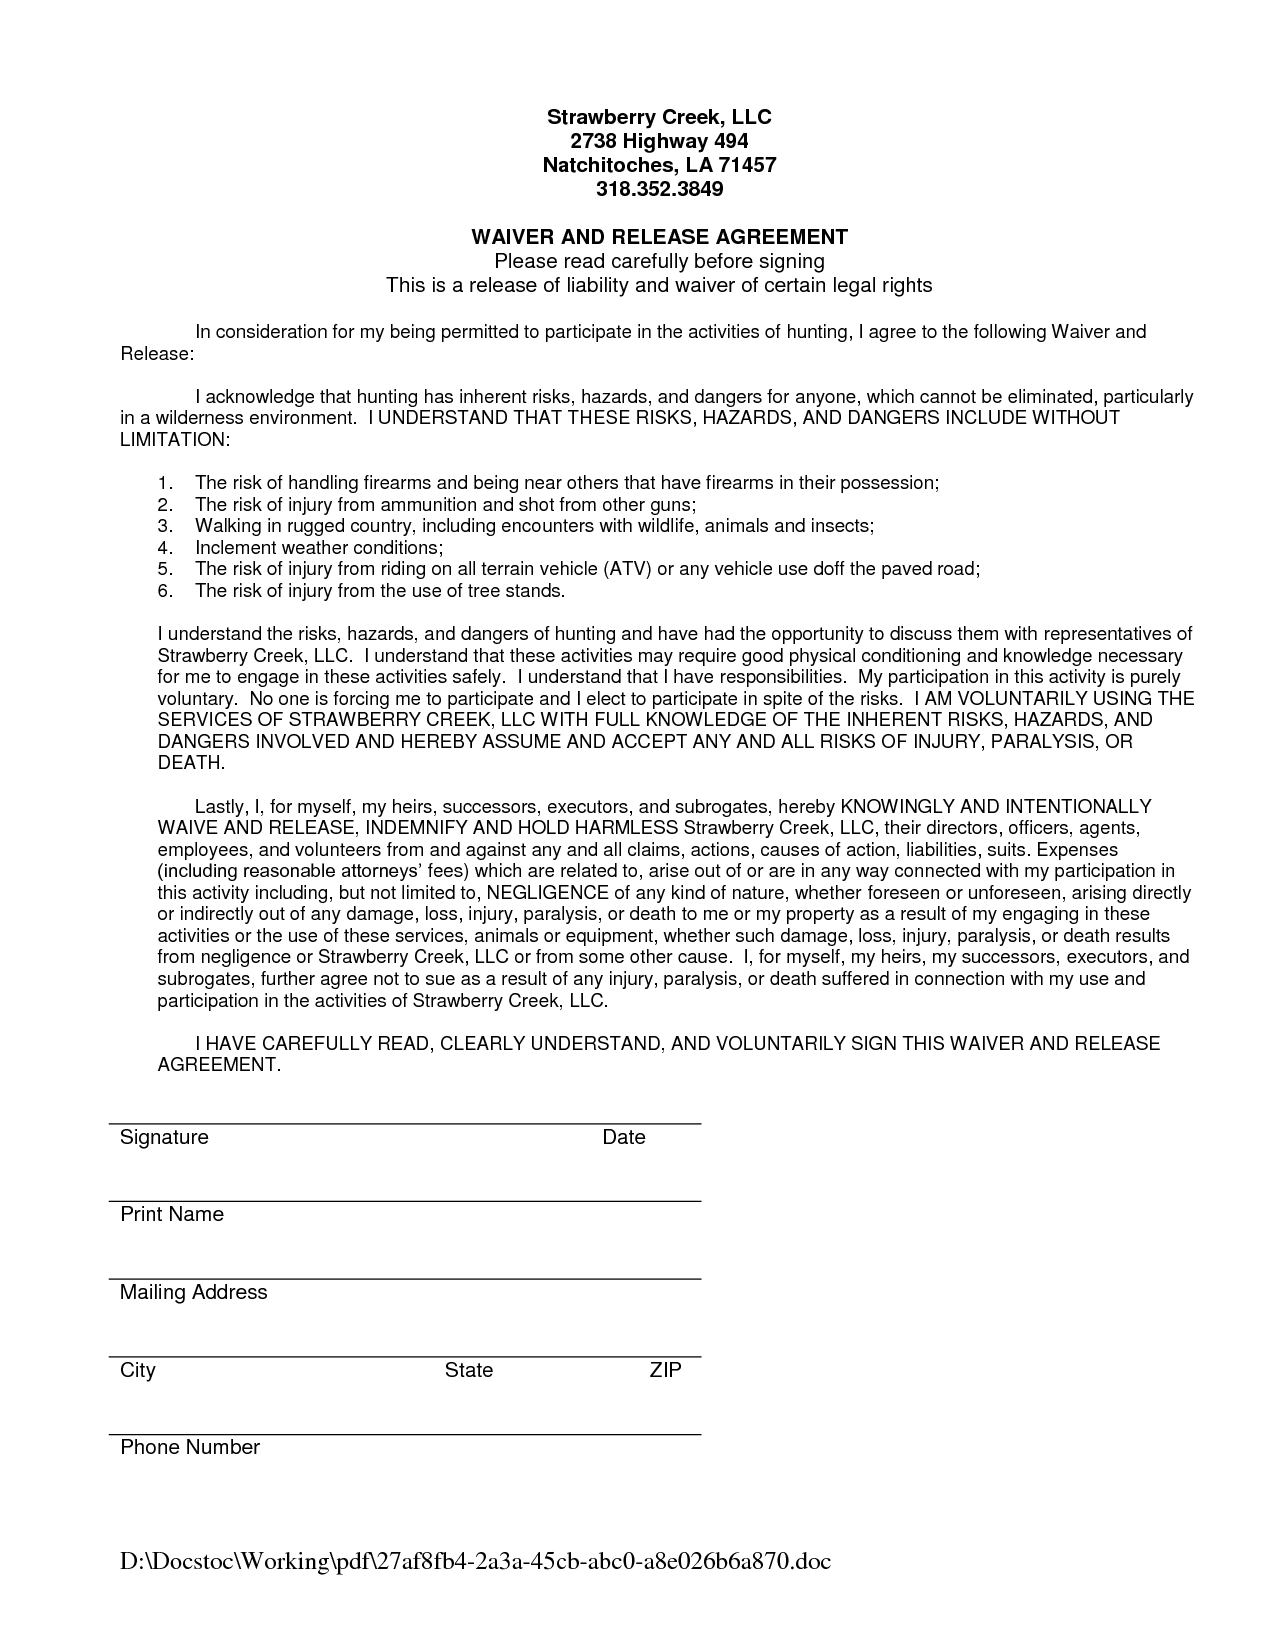 Waiver And Release Of Liability Form Sample Swifterco waiver – Liability Waiver Form